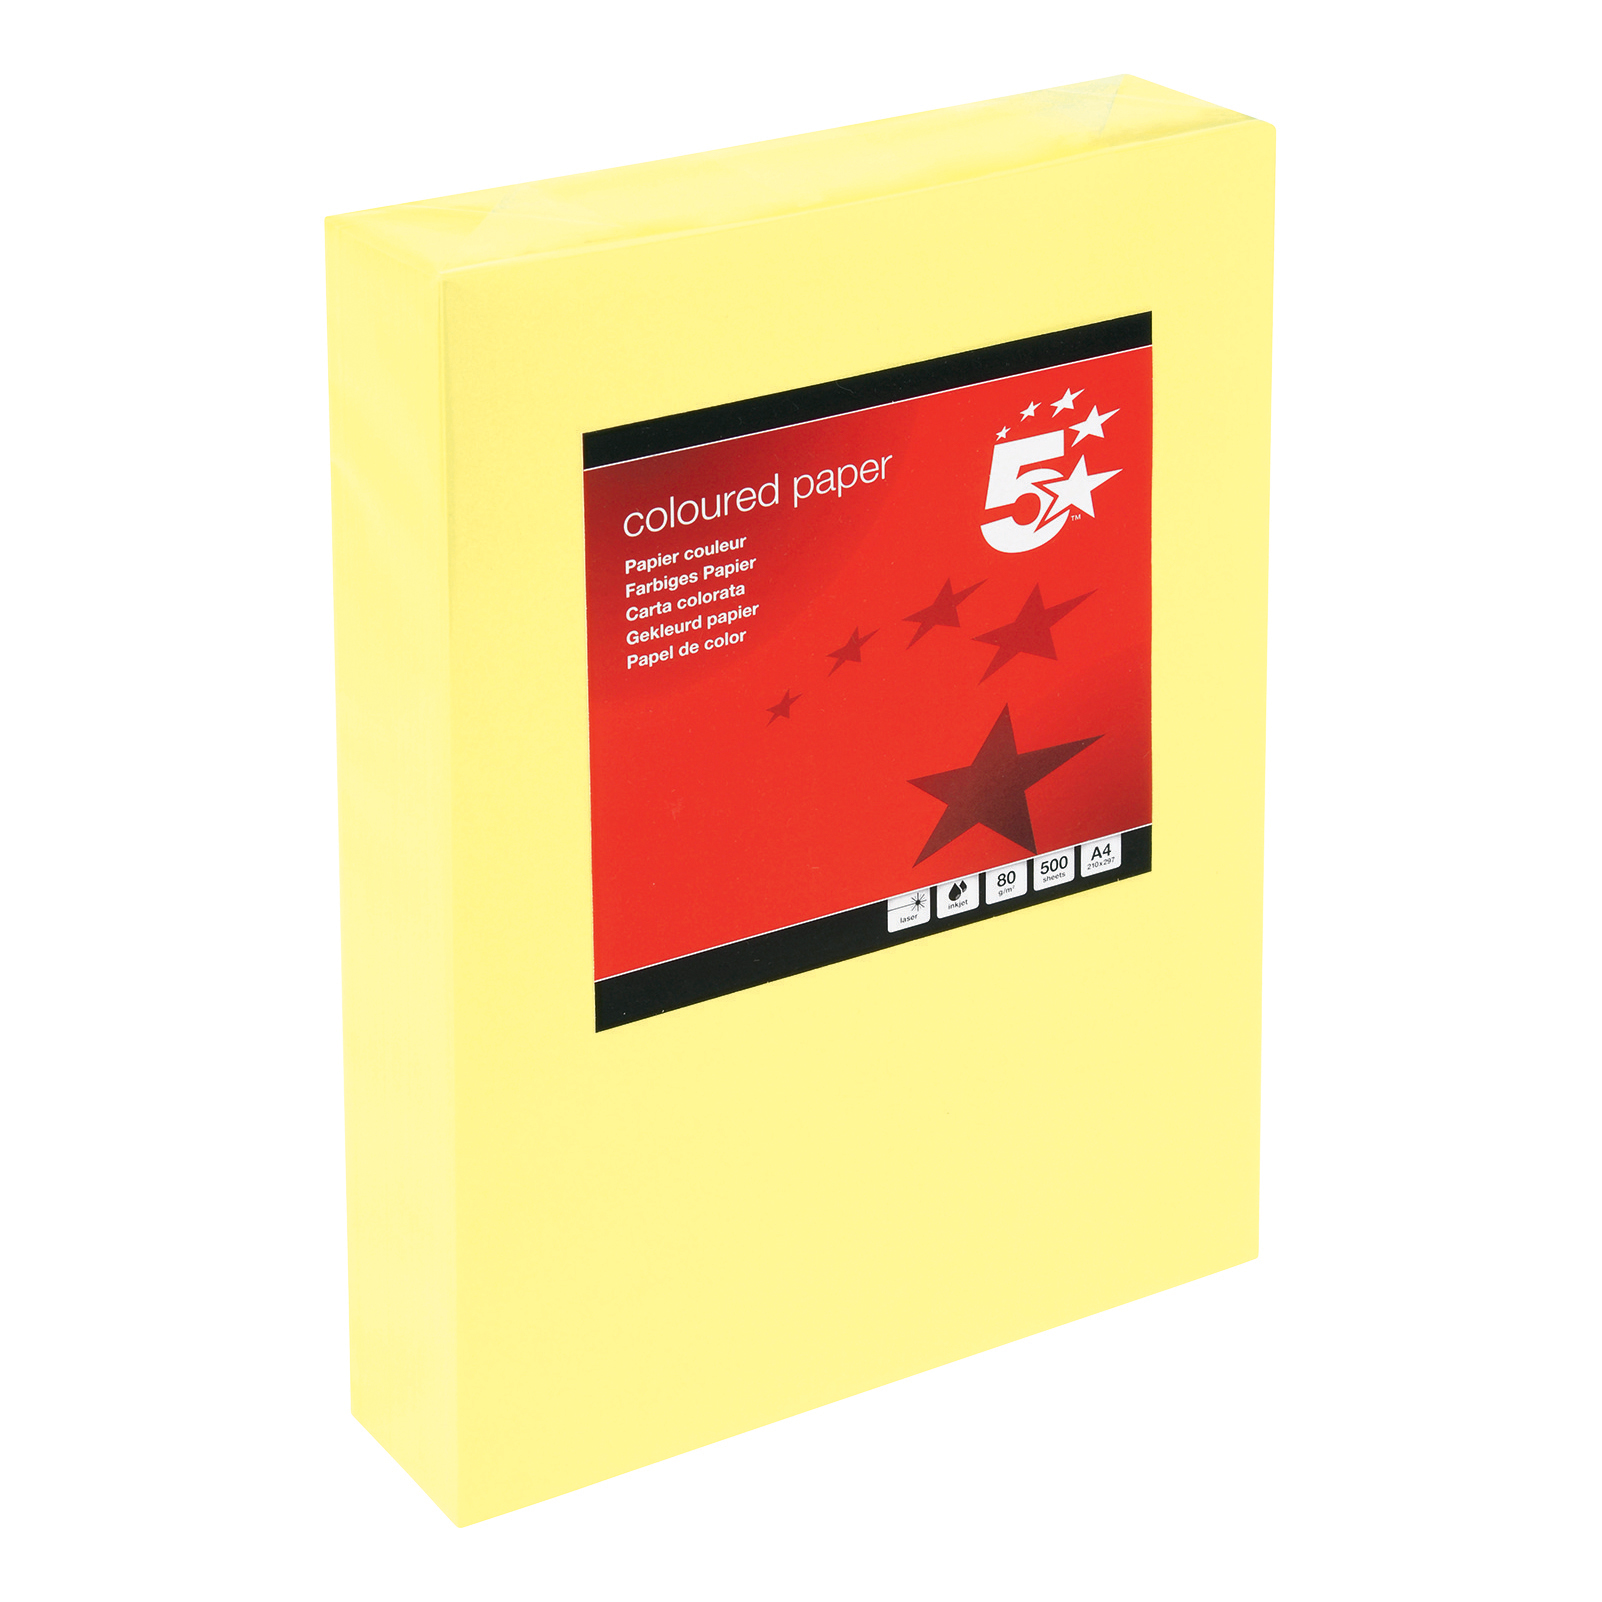 A4 5 Star Office Coloured Copier Paper Multifunctional Ream-Wrapped 80gsm A4 Medium Yellow [500 Sheets]